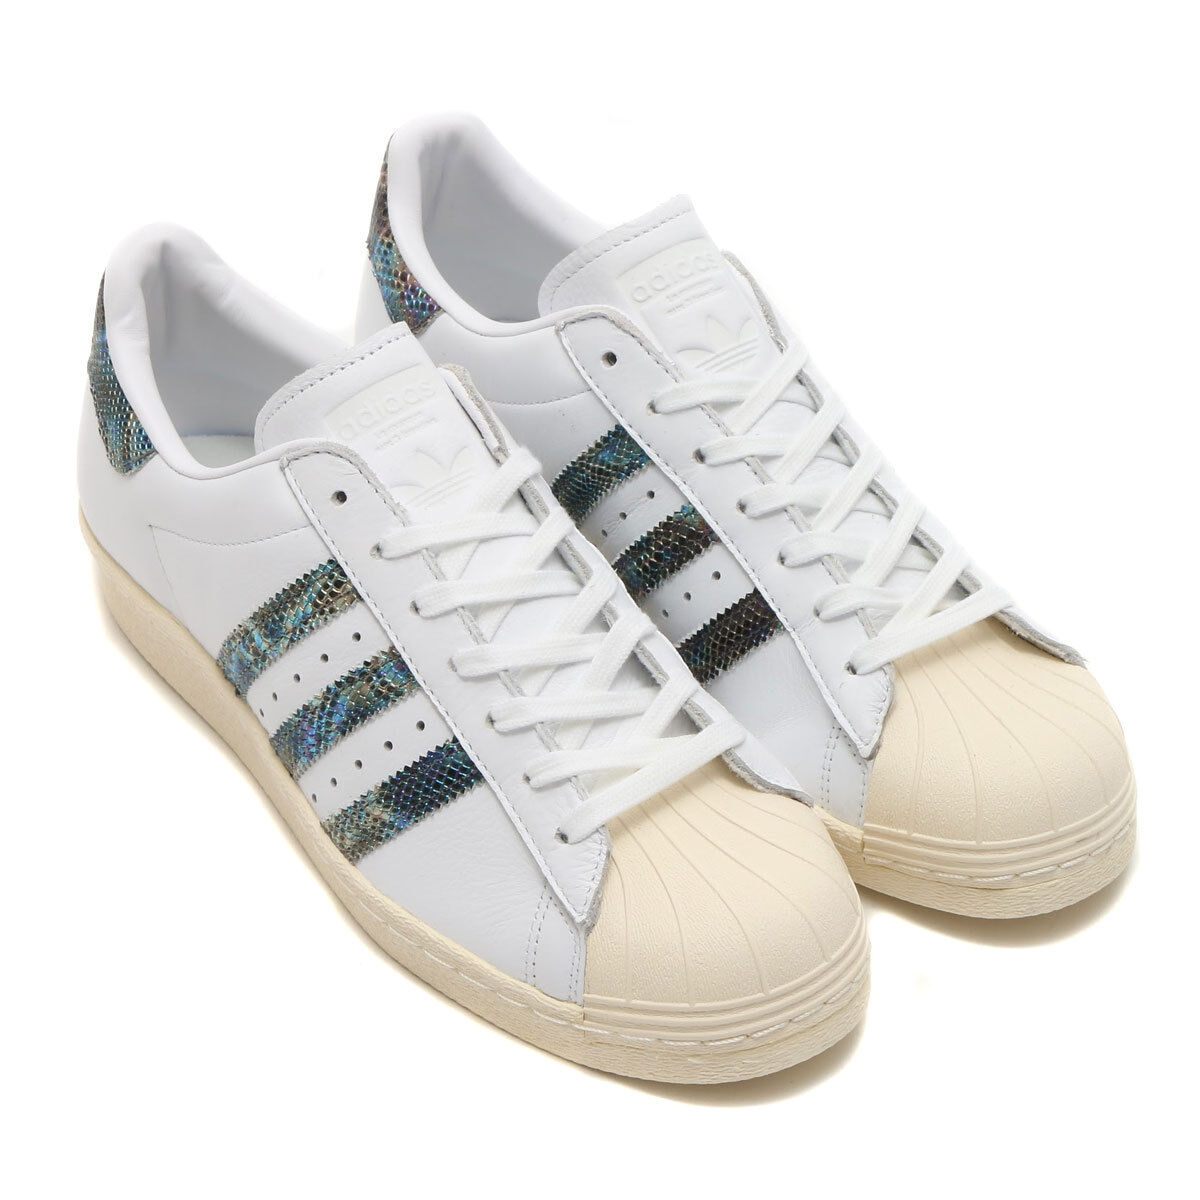 ADIDAS ORIGINALS SUPERSTAR 80S LEATHER blanc SNAKESKIN hommes SHOES SIZE 11 BZ0148